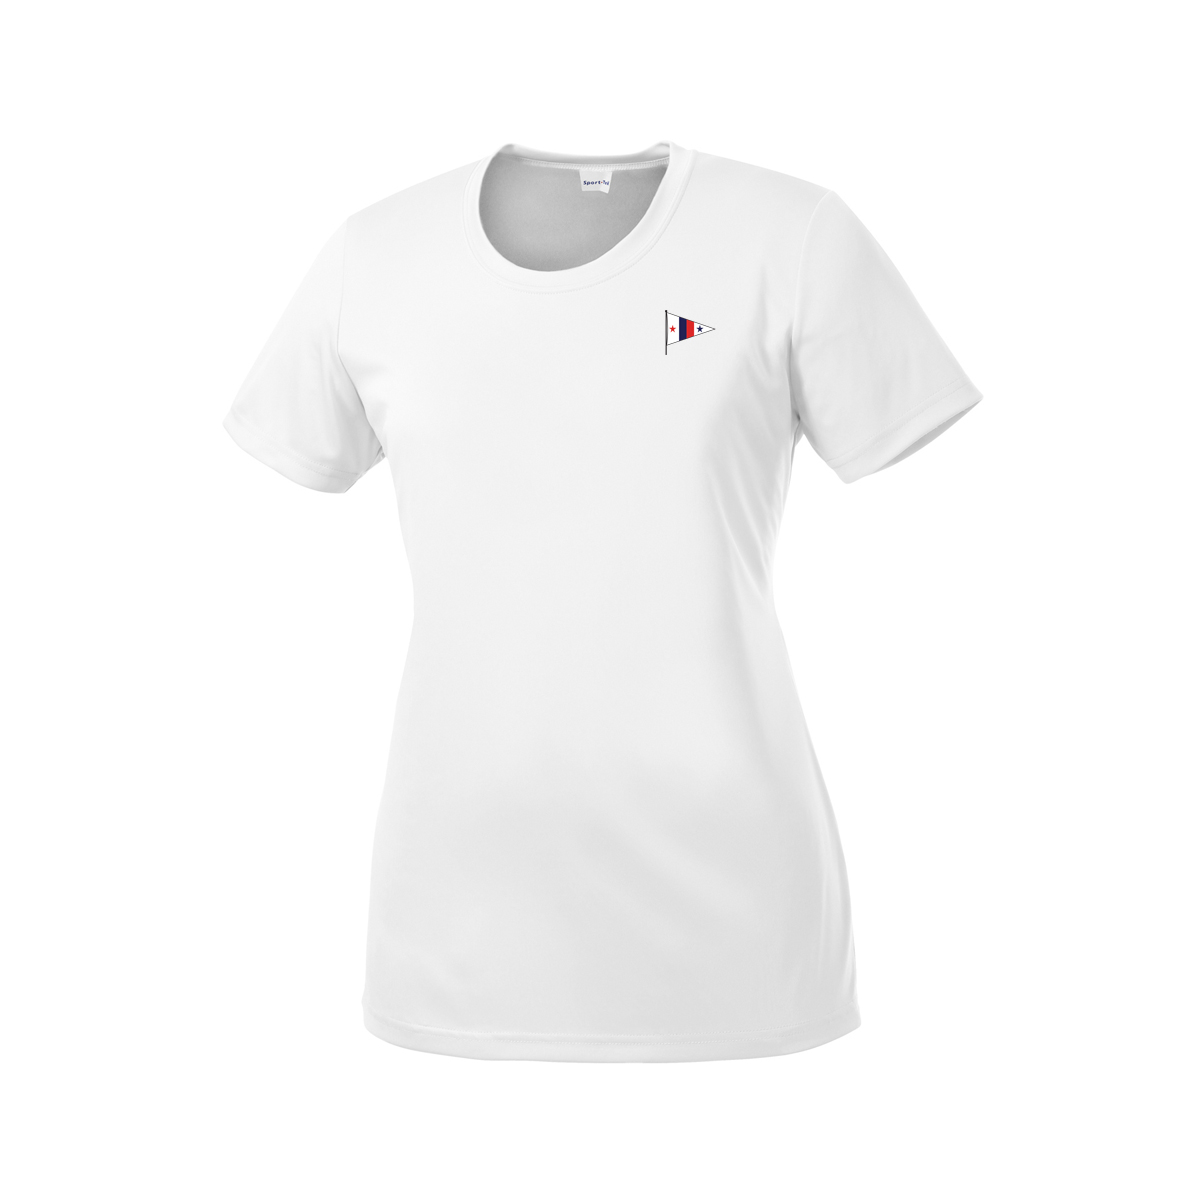 VINEYARD HAVEN YACHT CLUB W'S S/S TECH TEE